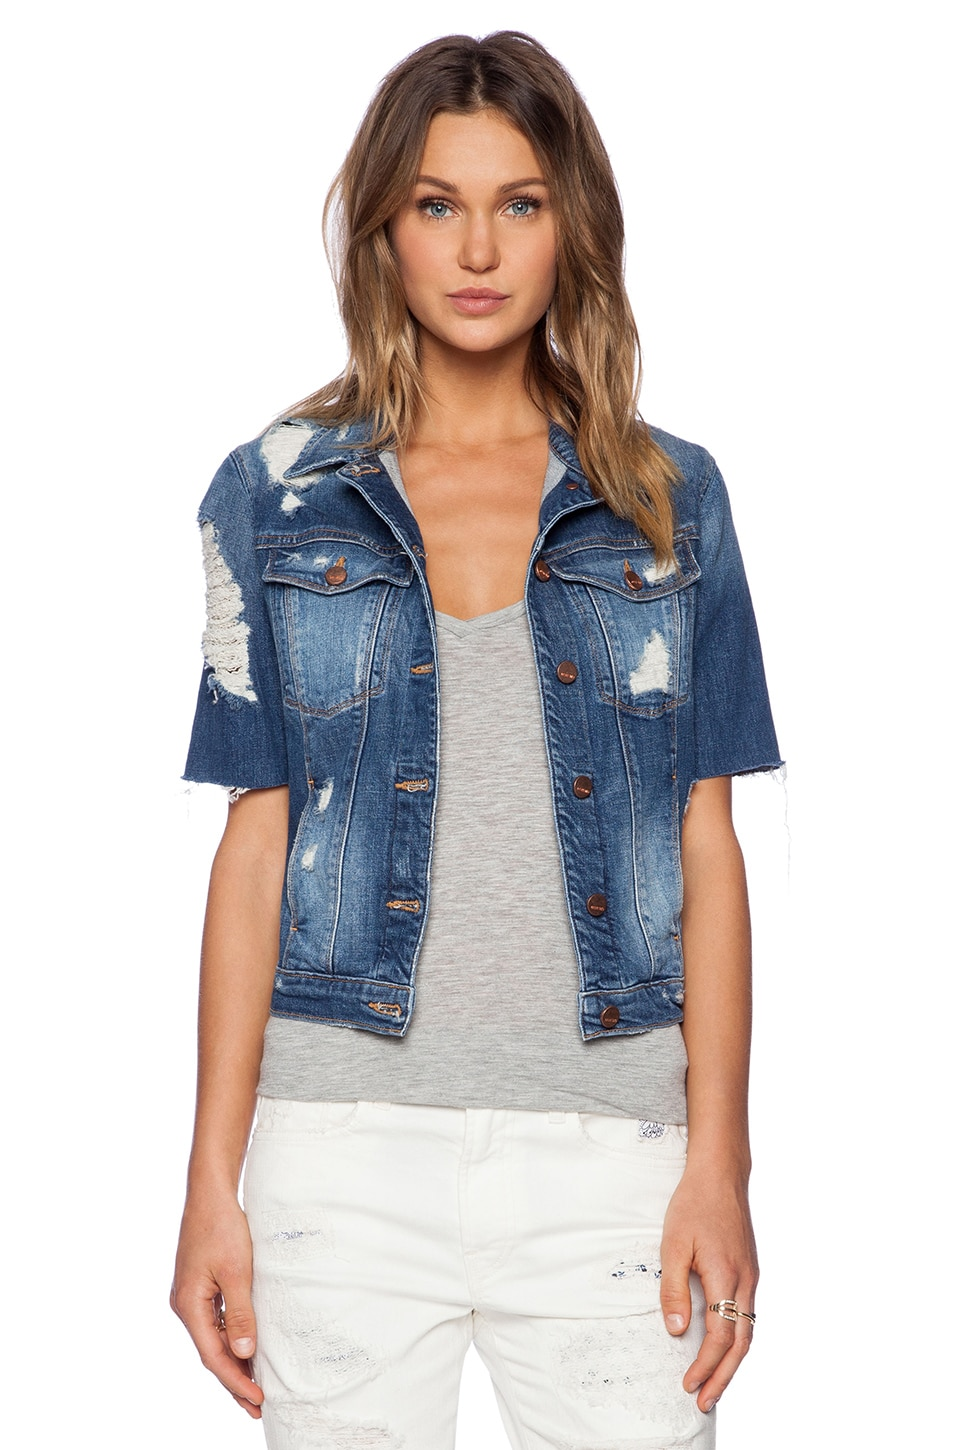 You'll love the Urbane Ultimate Megan Snap Front Short Sleeve Scrub Jackets from Scrubs & Beyond. Enjoy free shipping on orders of $ or more and our % price match guarantee. Shop now!